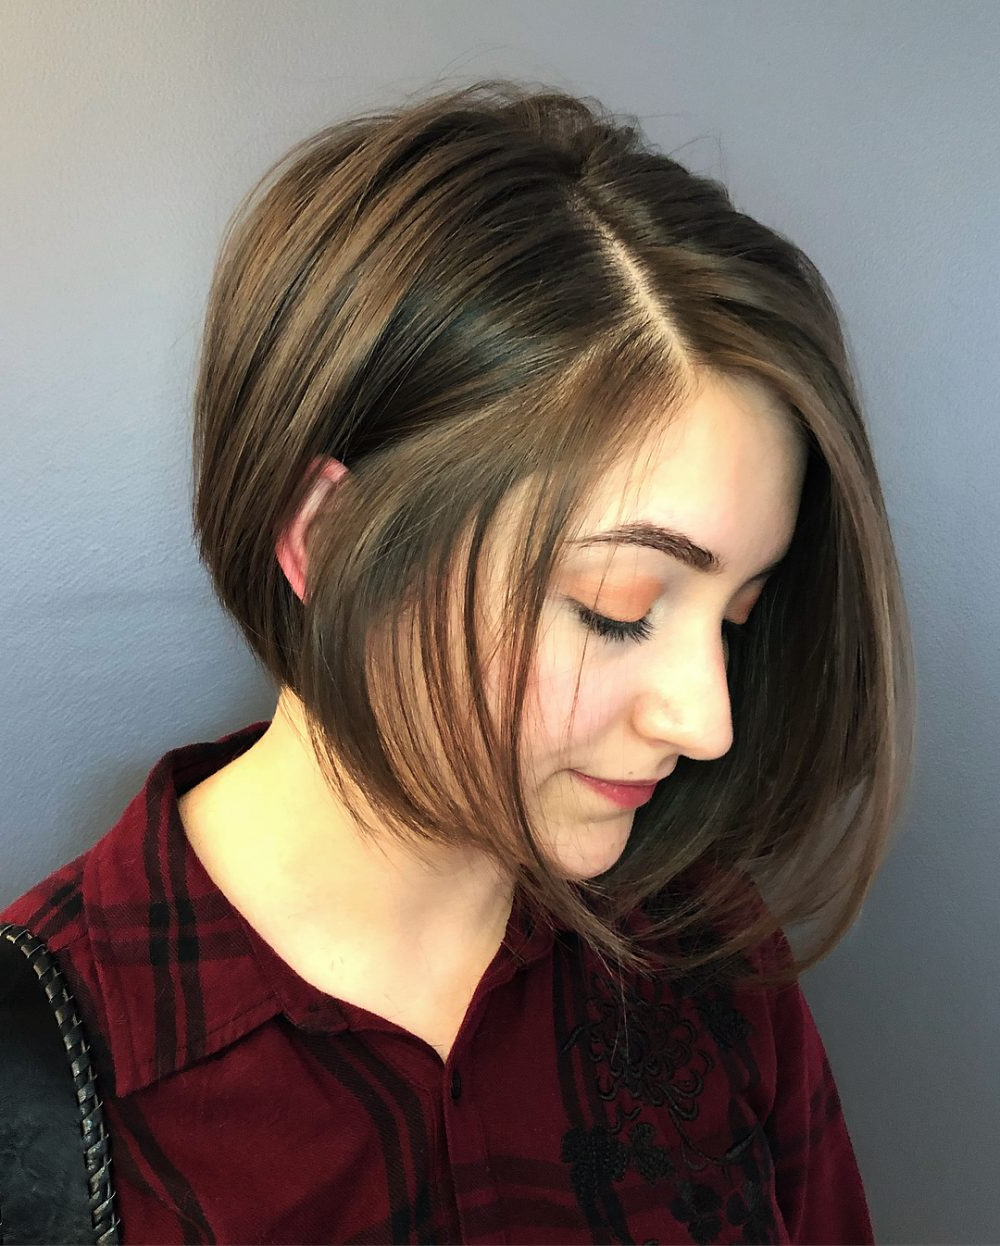 Medium Short Haircuts For Round Faces – Leymatson With Medium Short Hairstyles For Round Faces (View 3 of 25)